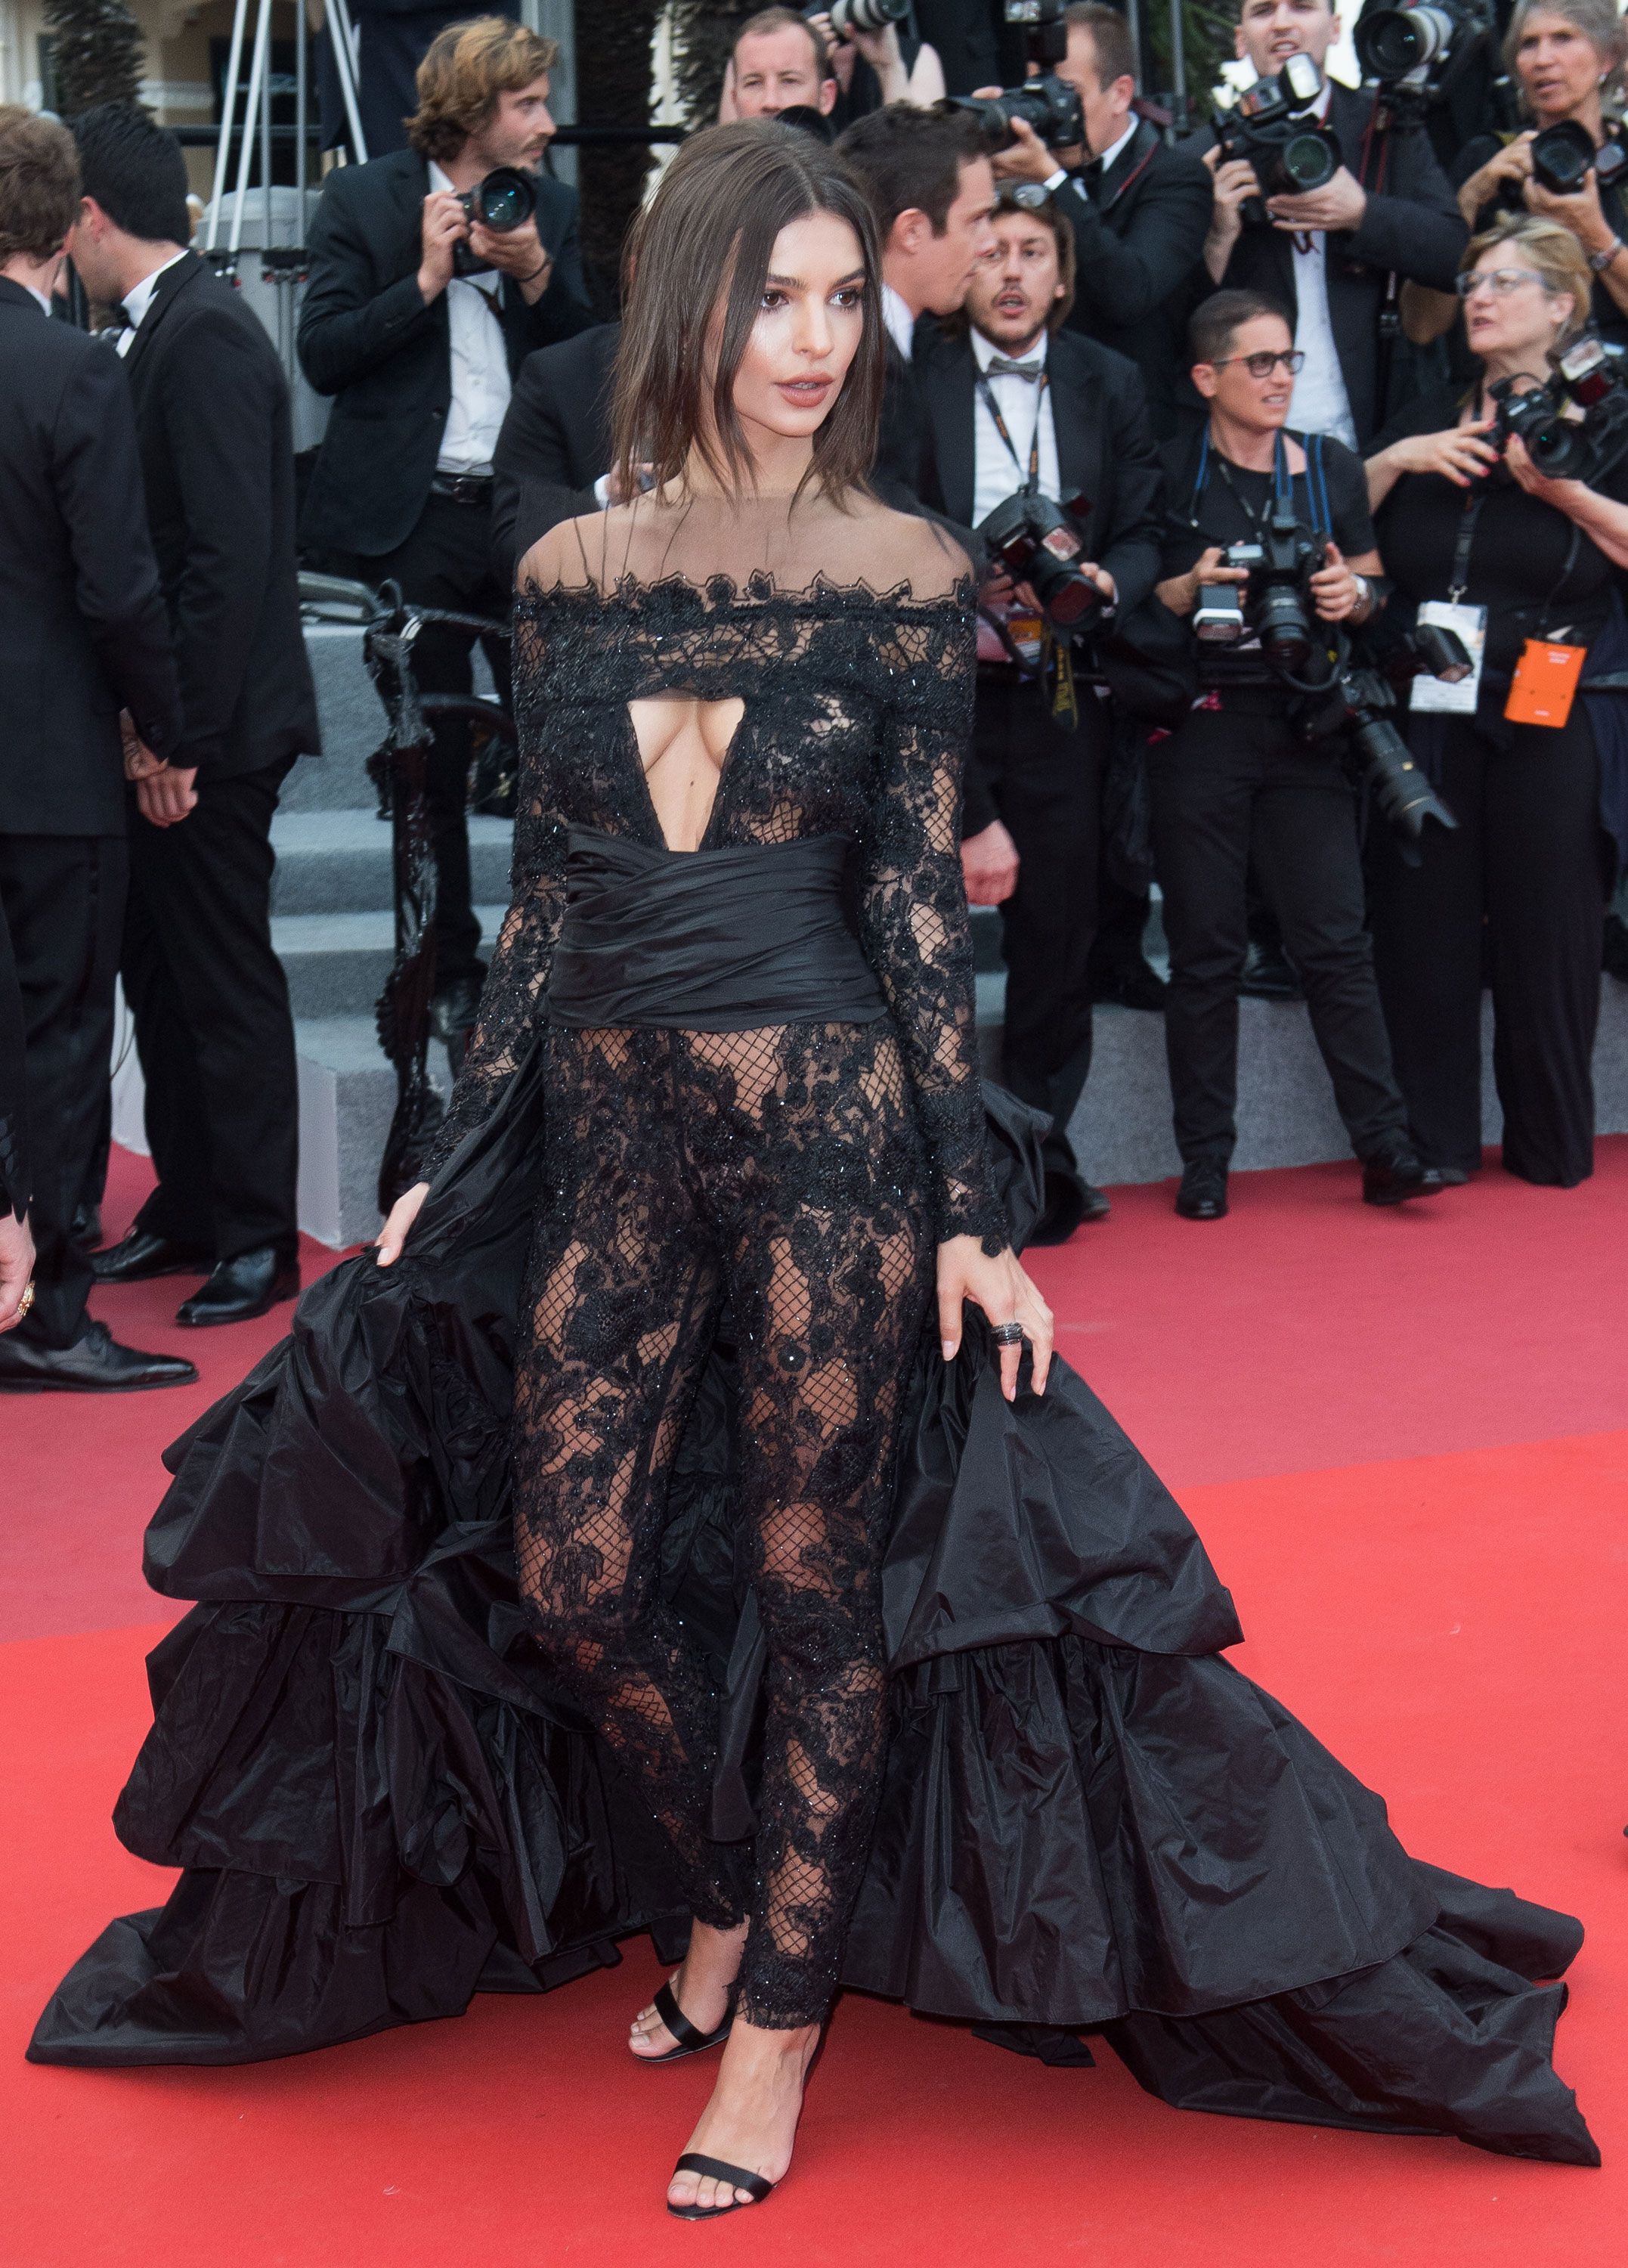 The Most Naked Dresses on The Cannes Red Carpet The Most Naked Dresses on The Cannes Red Carpet new picture